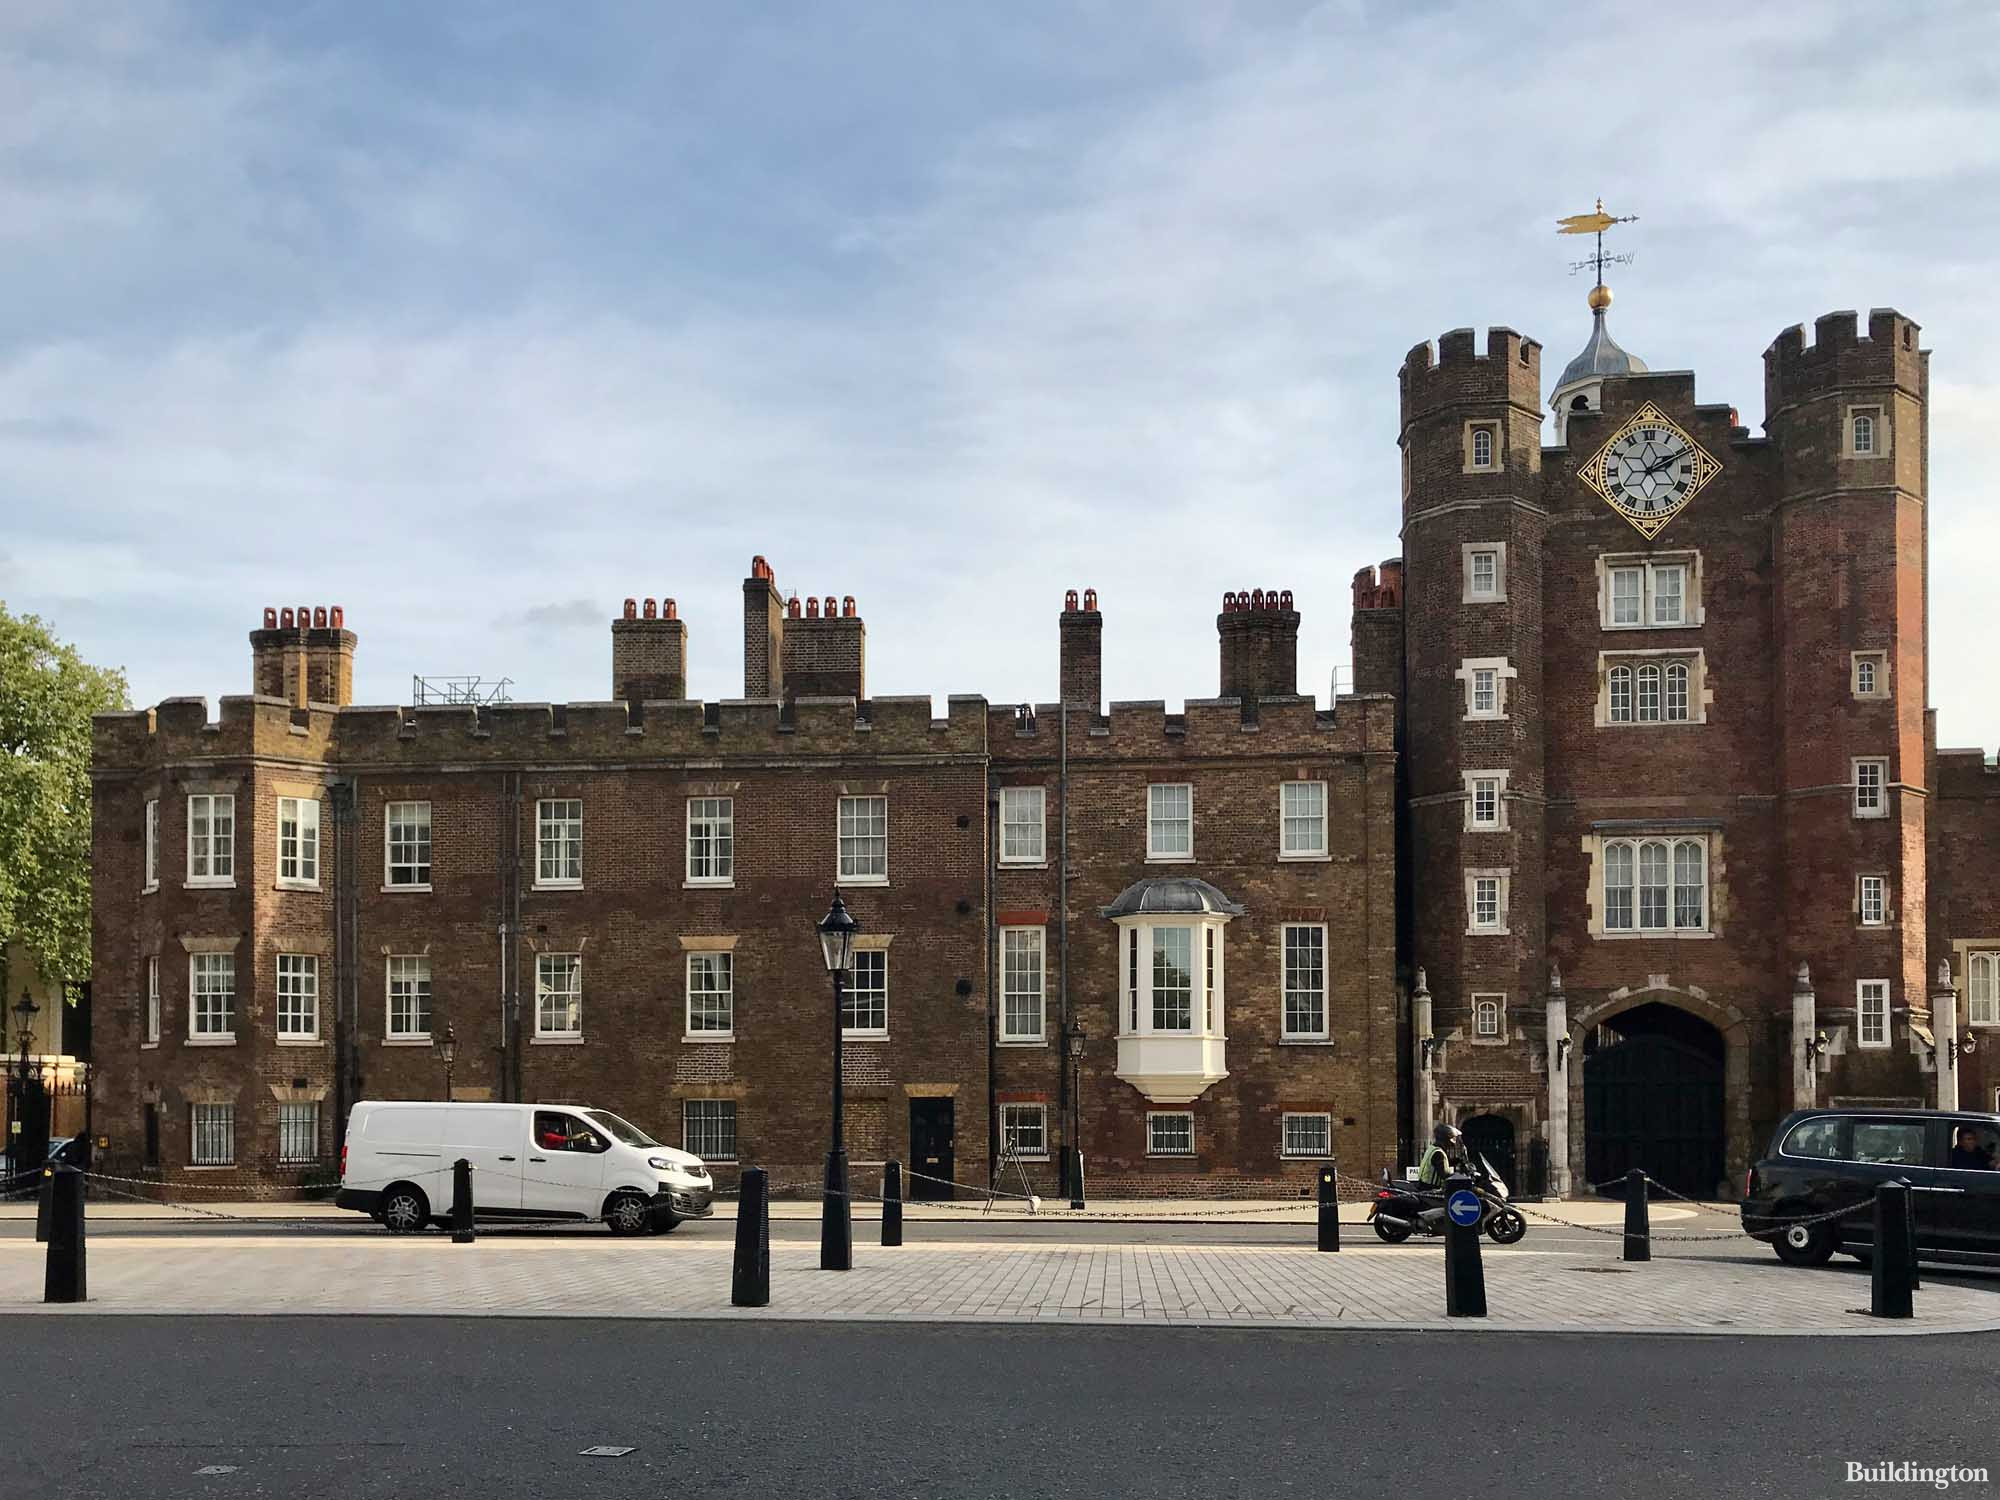 St James's Palace in autumn 2021.